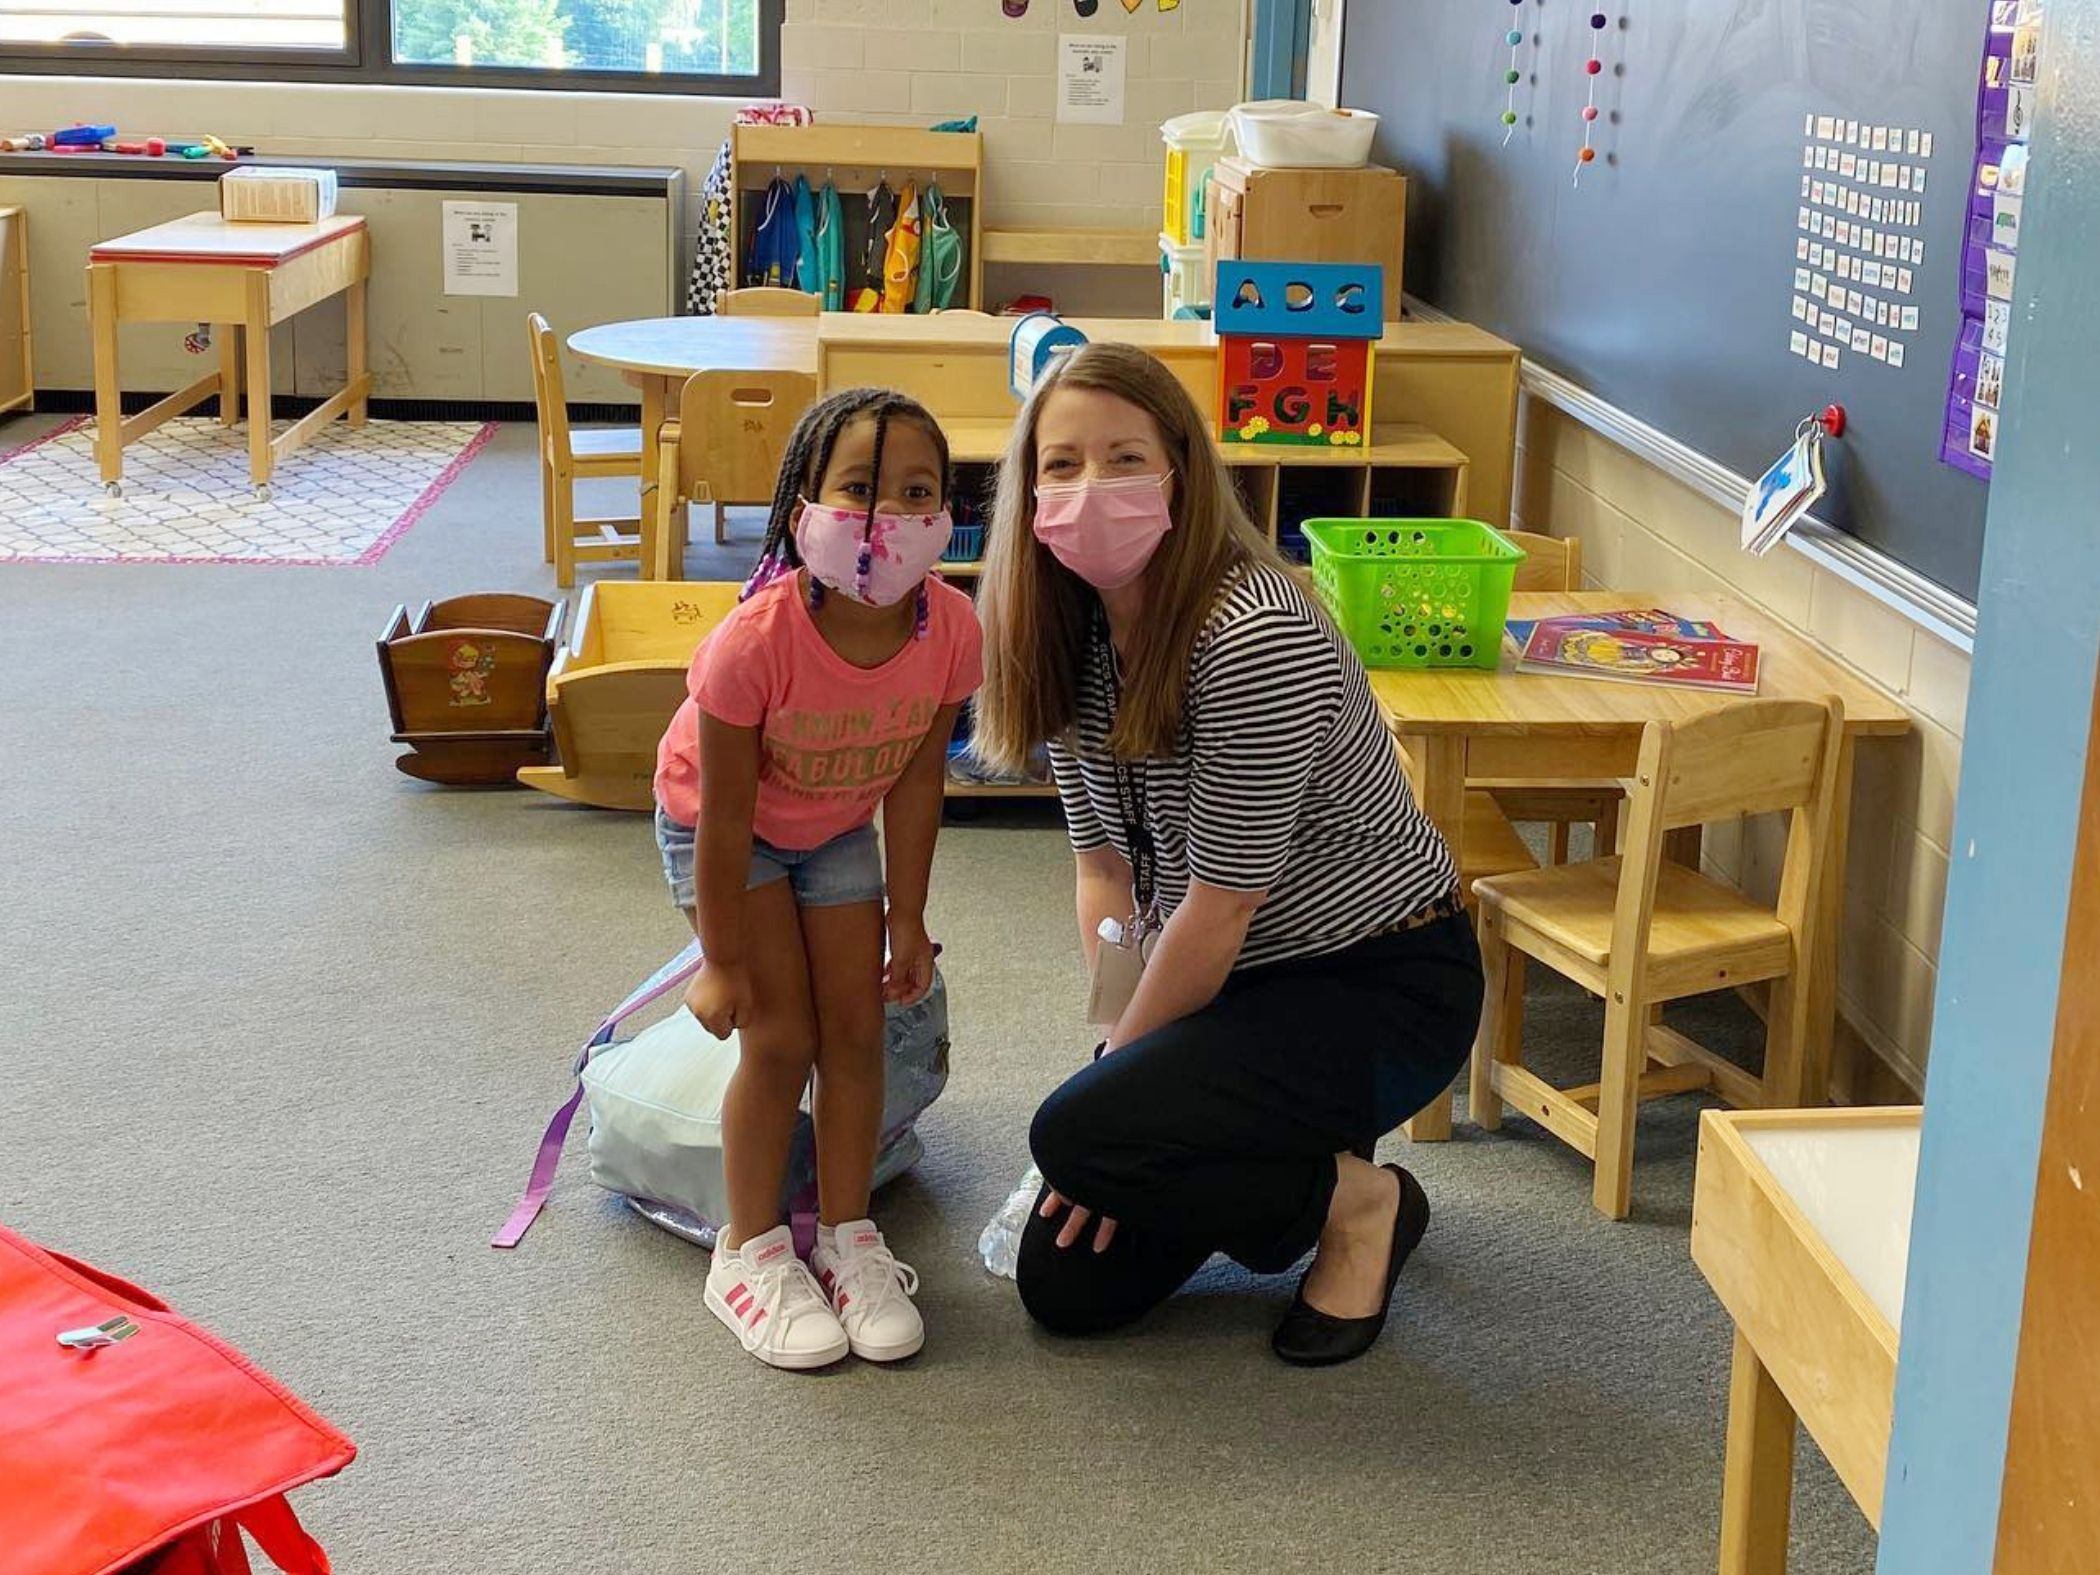 Student and teacher pose for camera